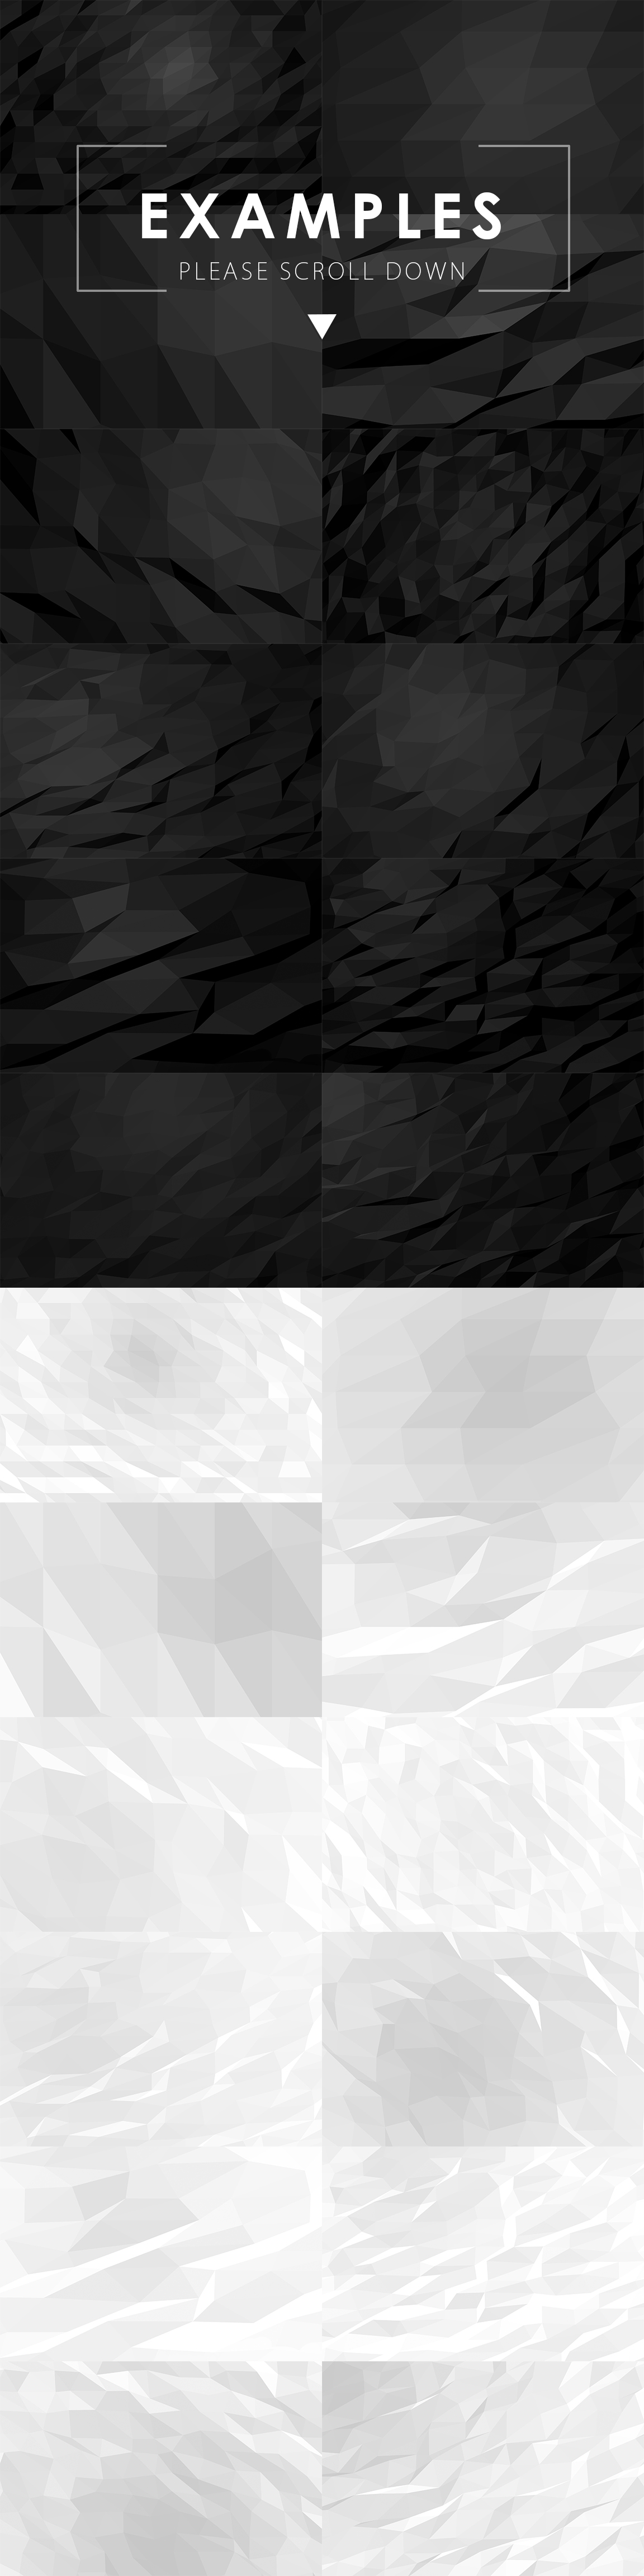 Black & White Polygon Backgrounds example image 2